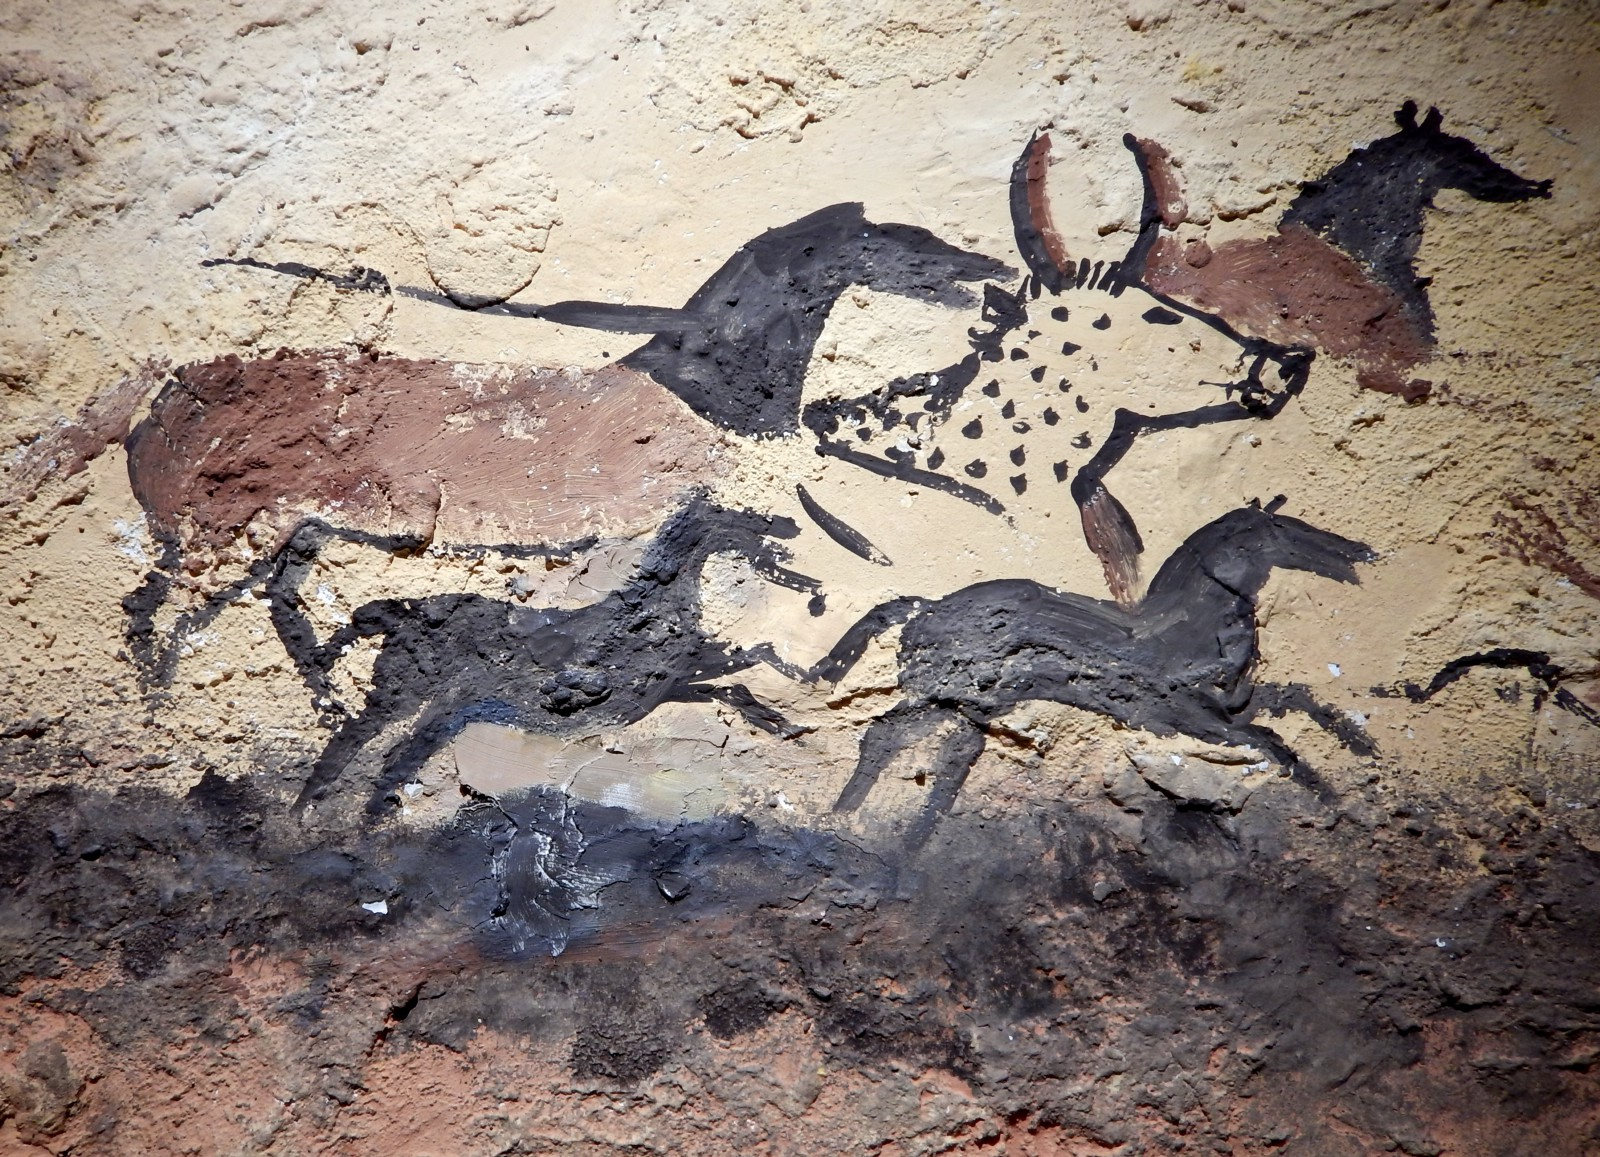 prehistoric artists painted images in the back of the caves